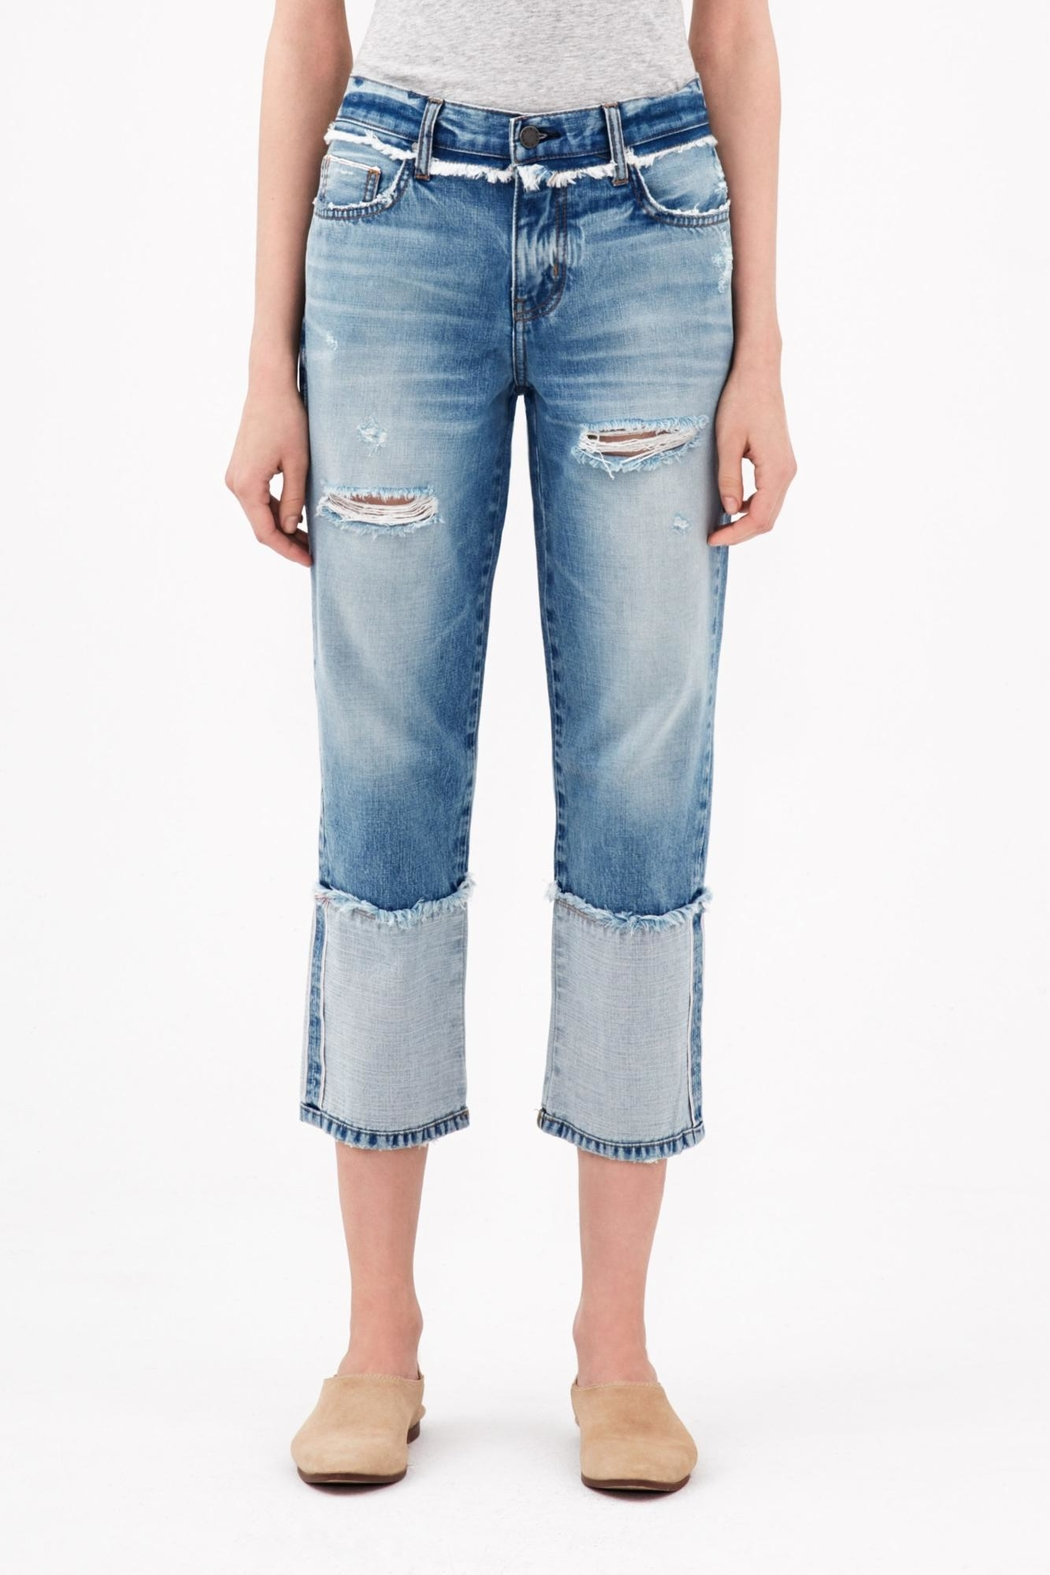 ei8ht dreams Reverse Selvedge Straight Crop - Front Cropped Image